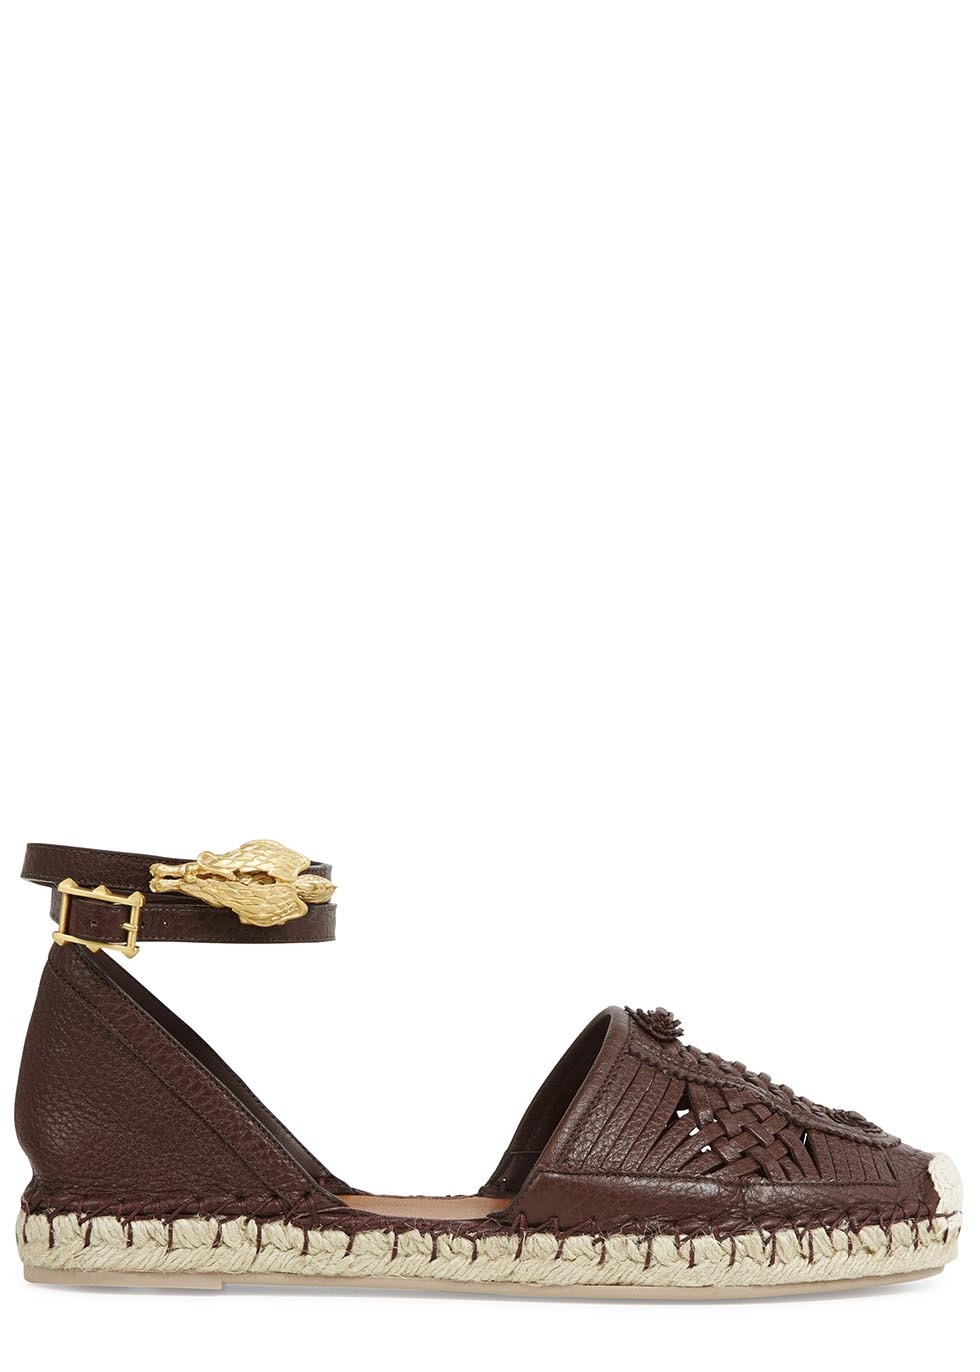 Chocolate Leather Espadrilles - predominant colour: chocolate brown; secondary colour: gold; occasions: casual, holiday; material: leather; heel height: flat; ankle detail: ankle strap; toe: round toe; finish: plain; pattern: plain; embellishment: chain/metal; style: espadrilles; season: s/s 2014